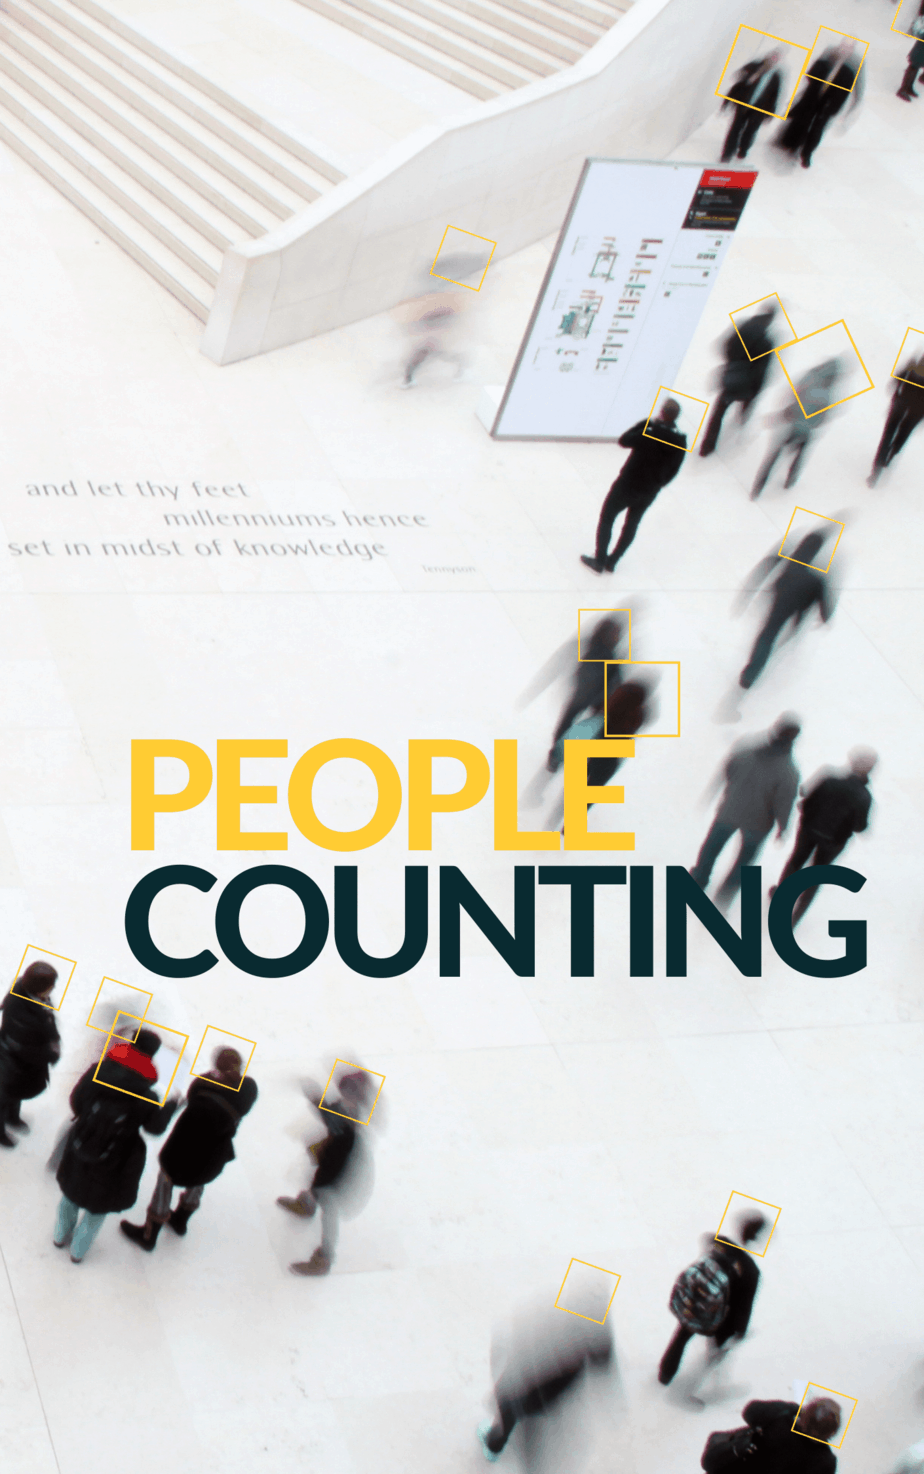 People Counting Ebook download featured